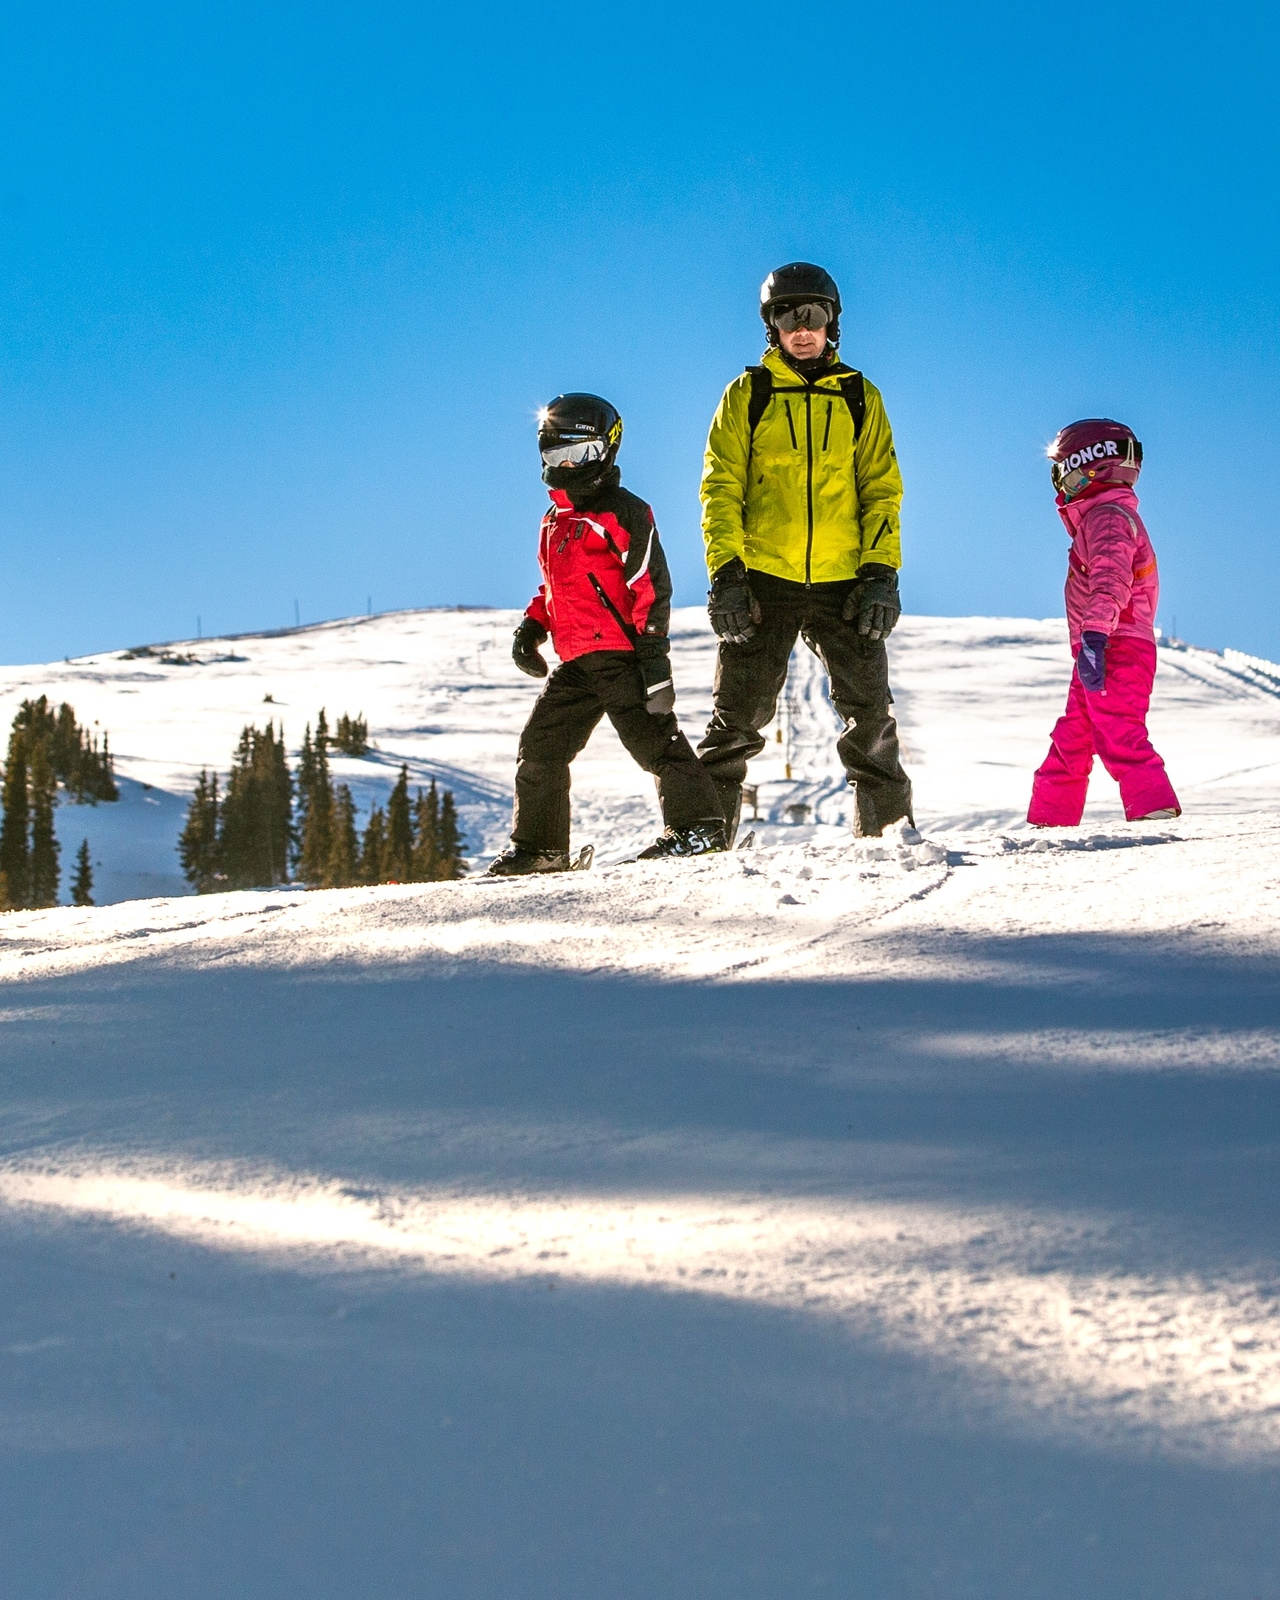 A family skis on opening day Monday, Nov. 30, at Copper Mountain Resort. | Photo by Liz Copan / Studio Copan